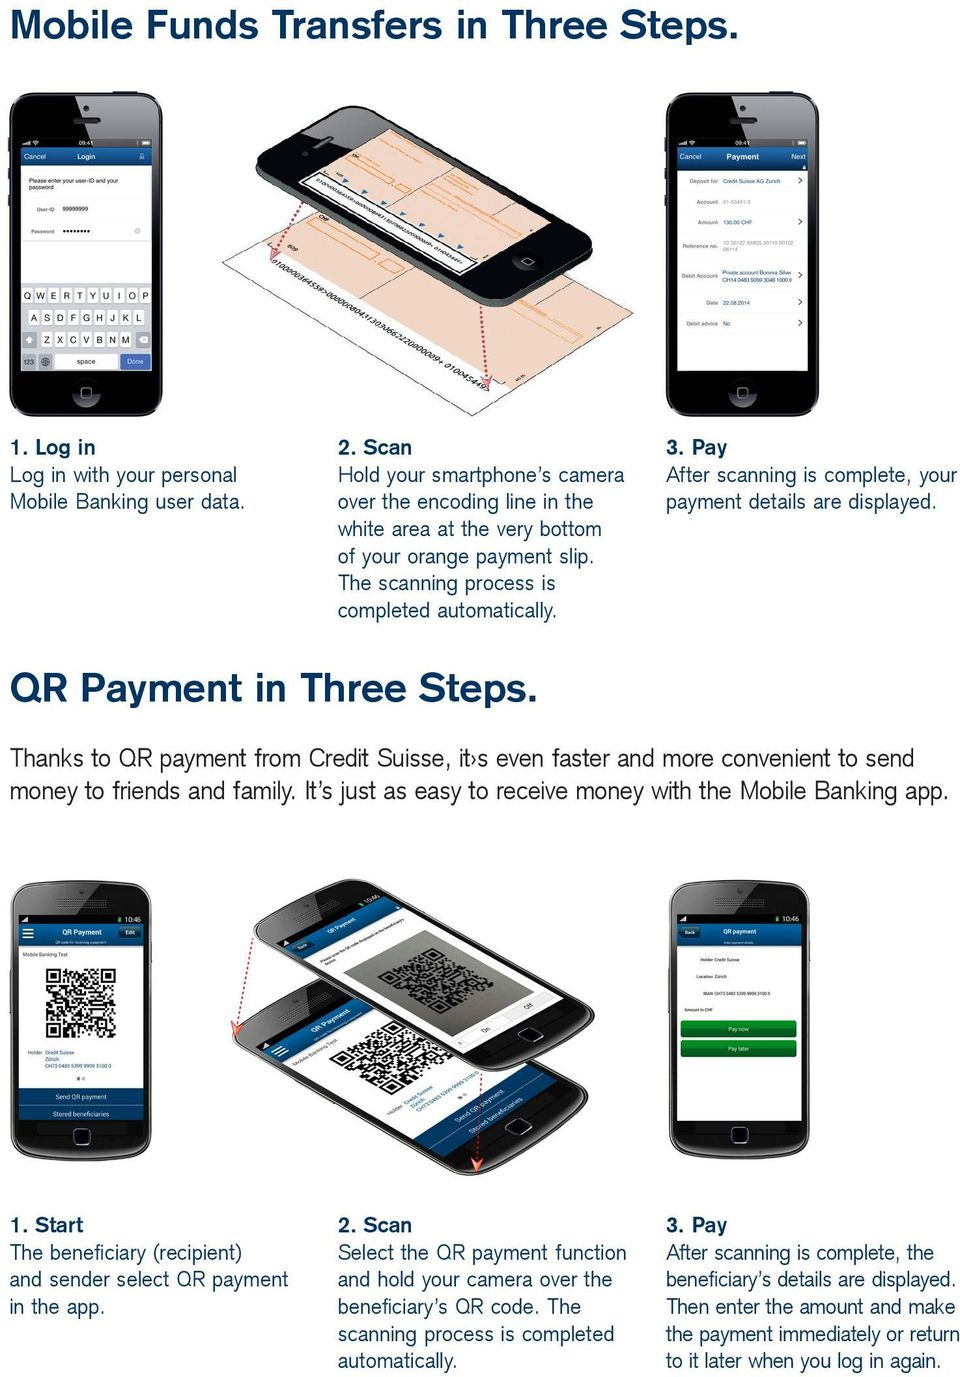 Pay After scanning is complete, your payment details are displayed. QR Payment in Three Steps.